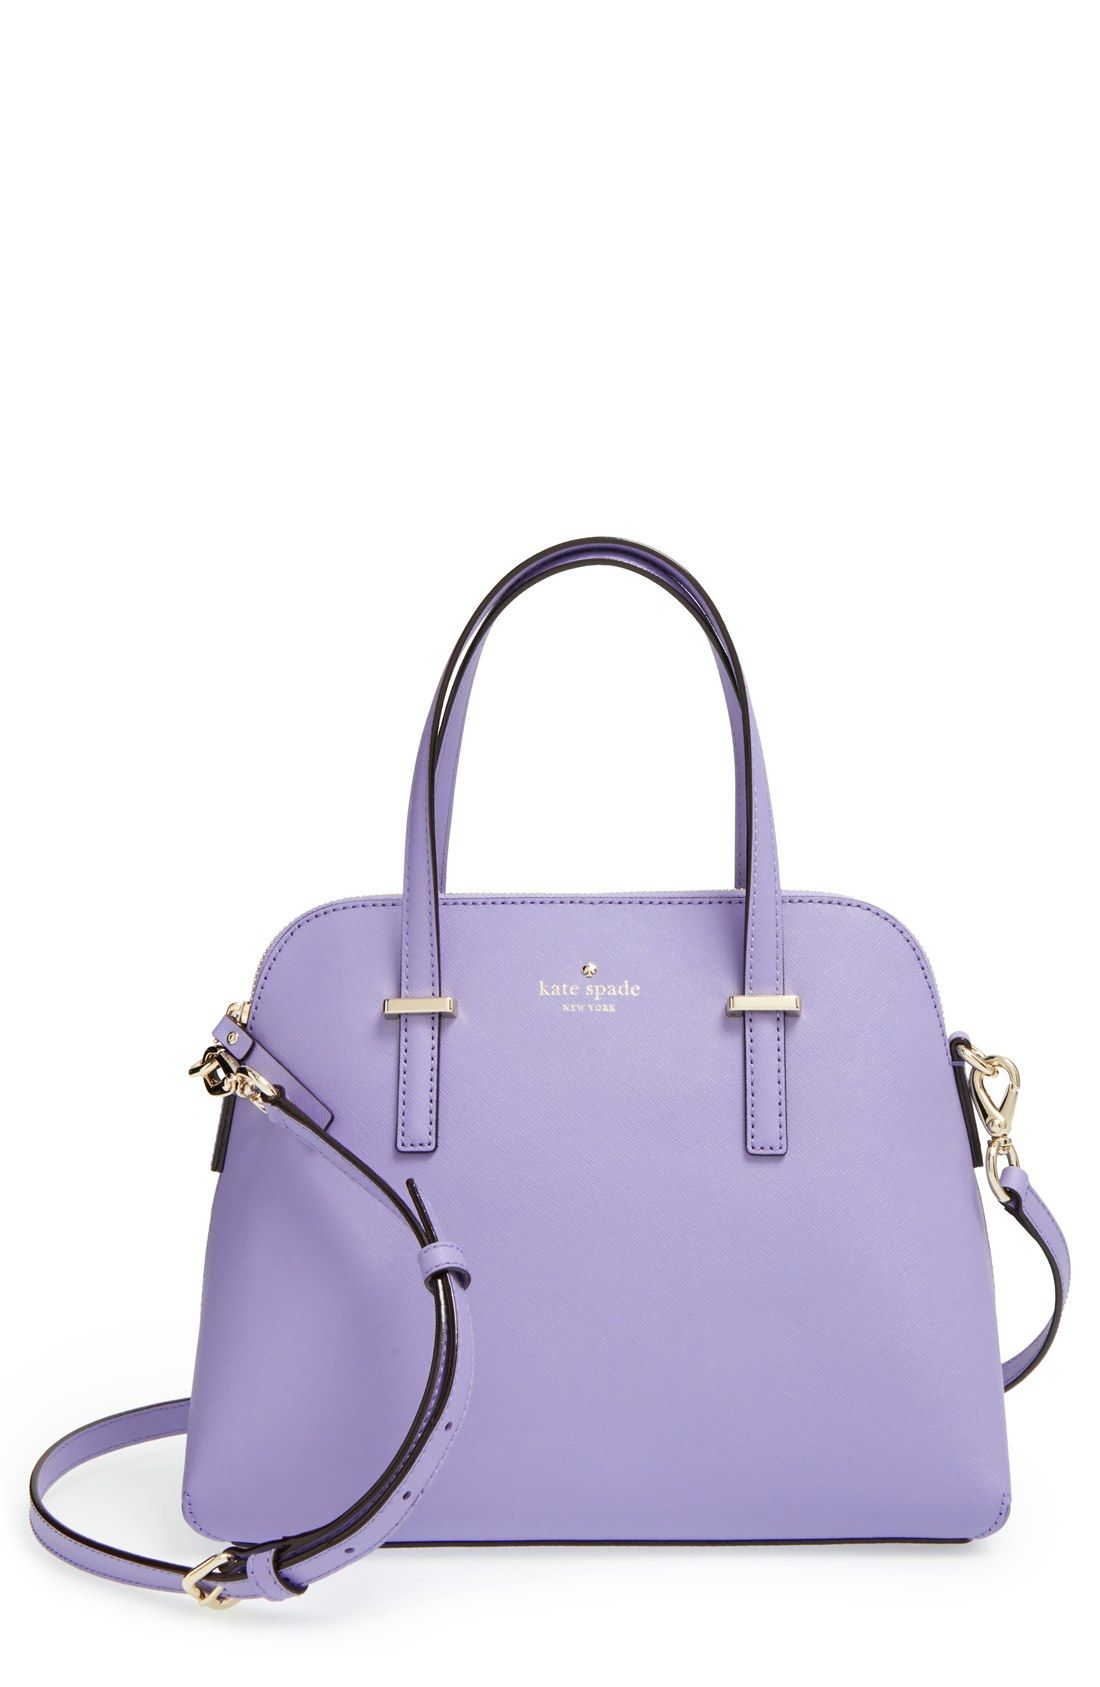 0e4eacbfcb35 This lavender Kate Spade satchel is too cute! | Women's Accessories ...